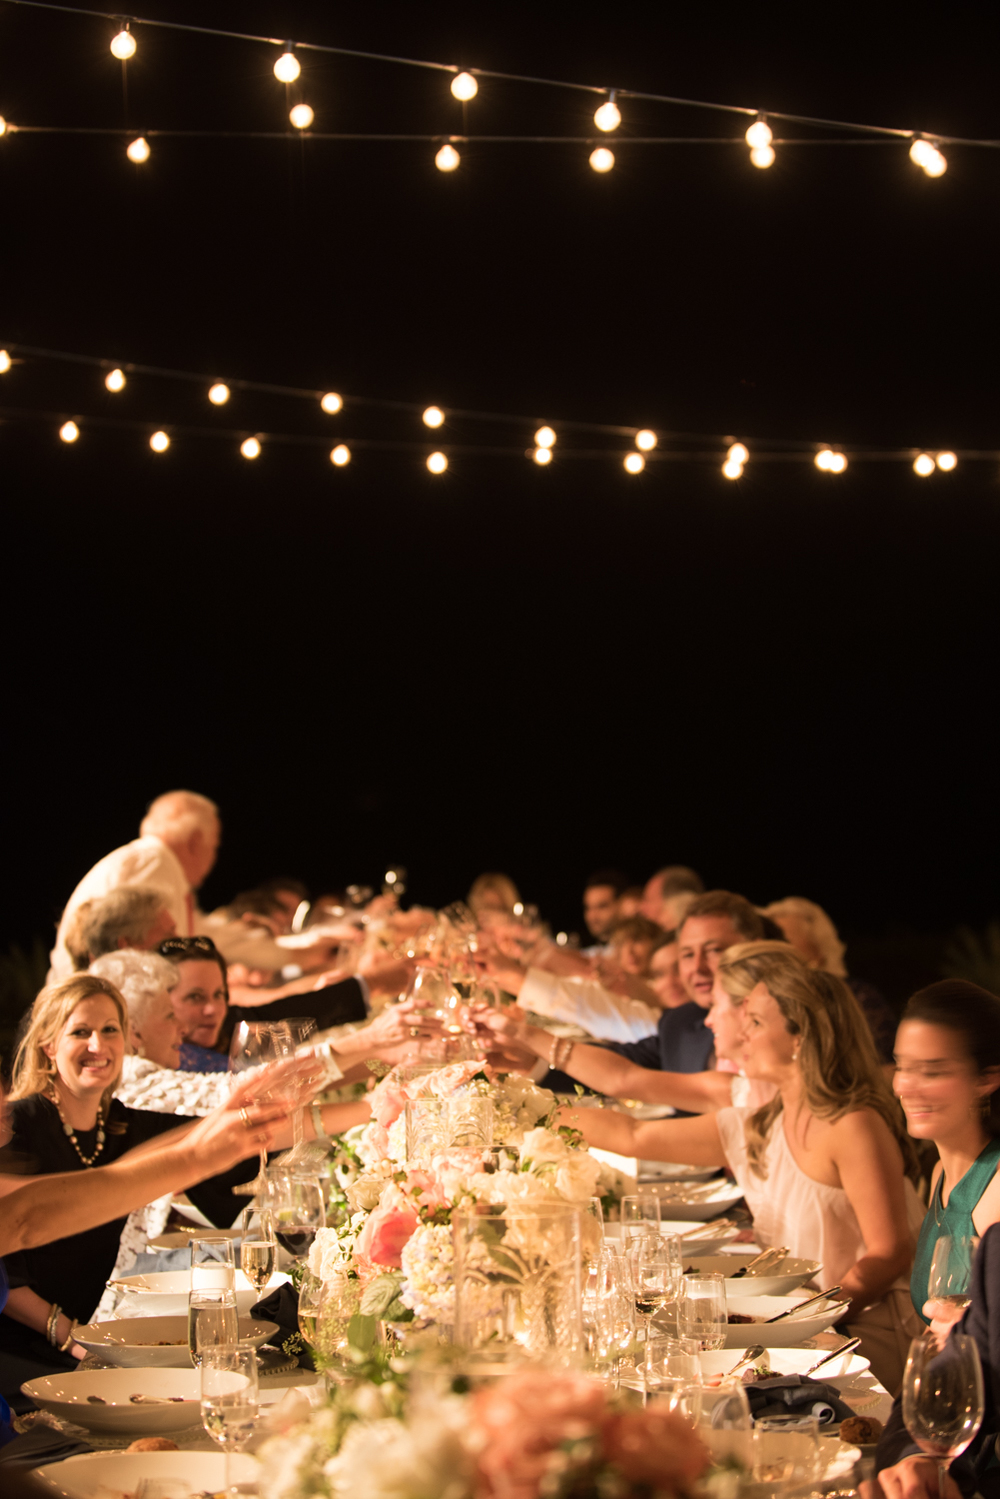 Guests toast as night falls over the gorgeously laid reception tables lit by string lights; photo by Sylvie Gil